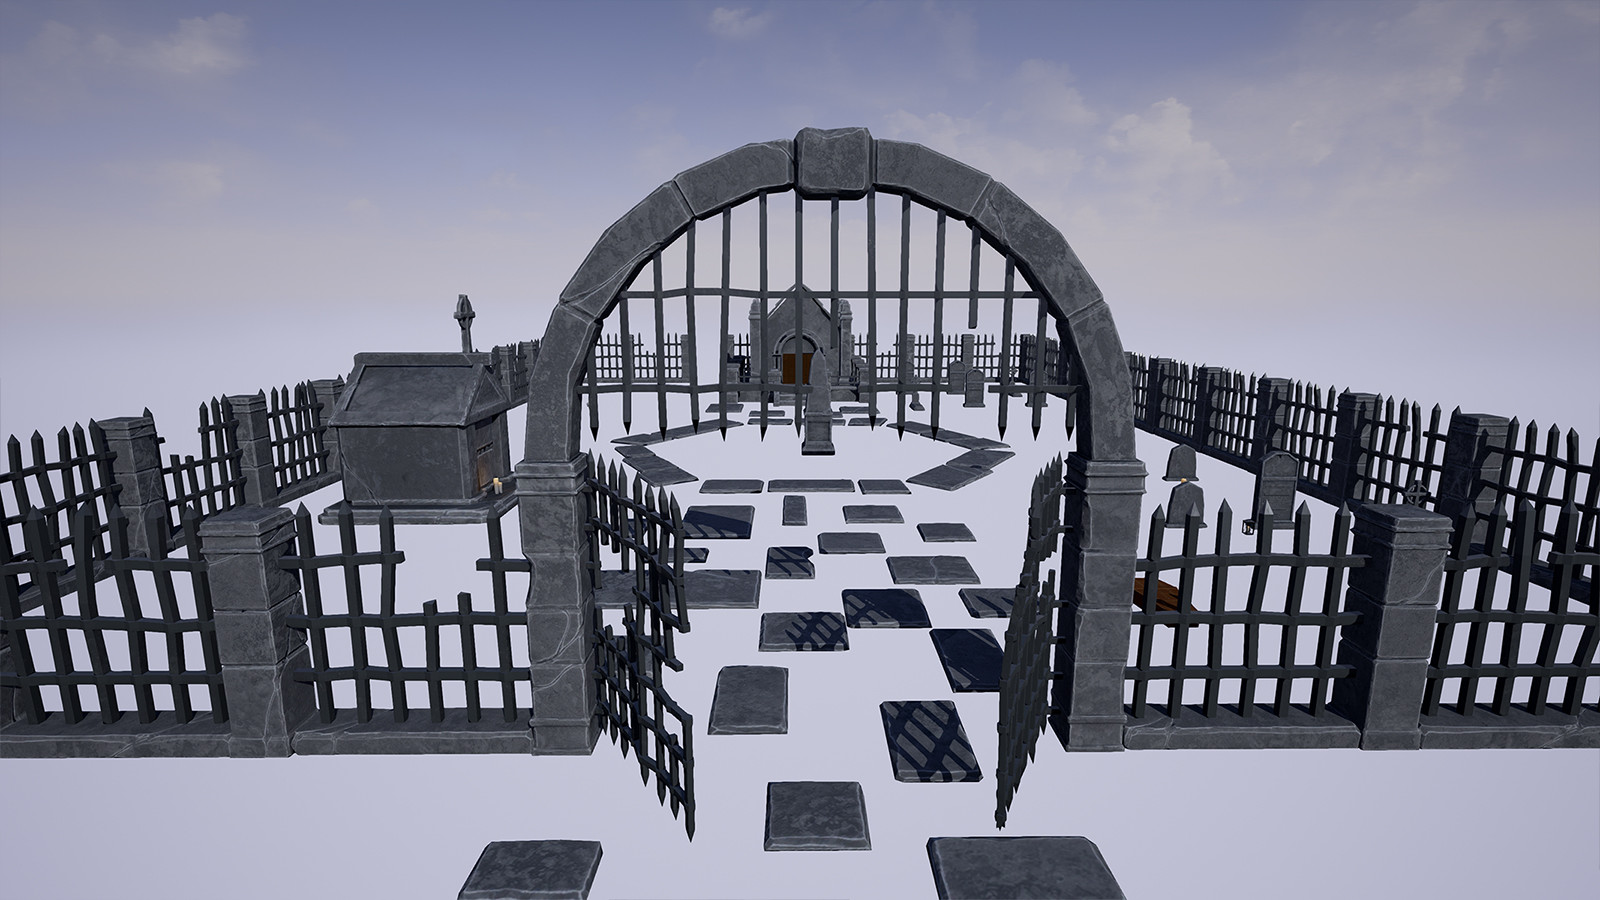 StylizedCemeteryPack (UE4 and Unity3d)